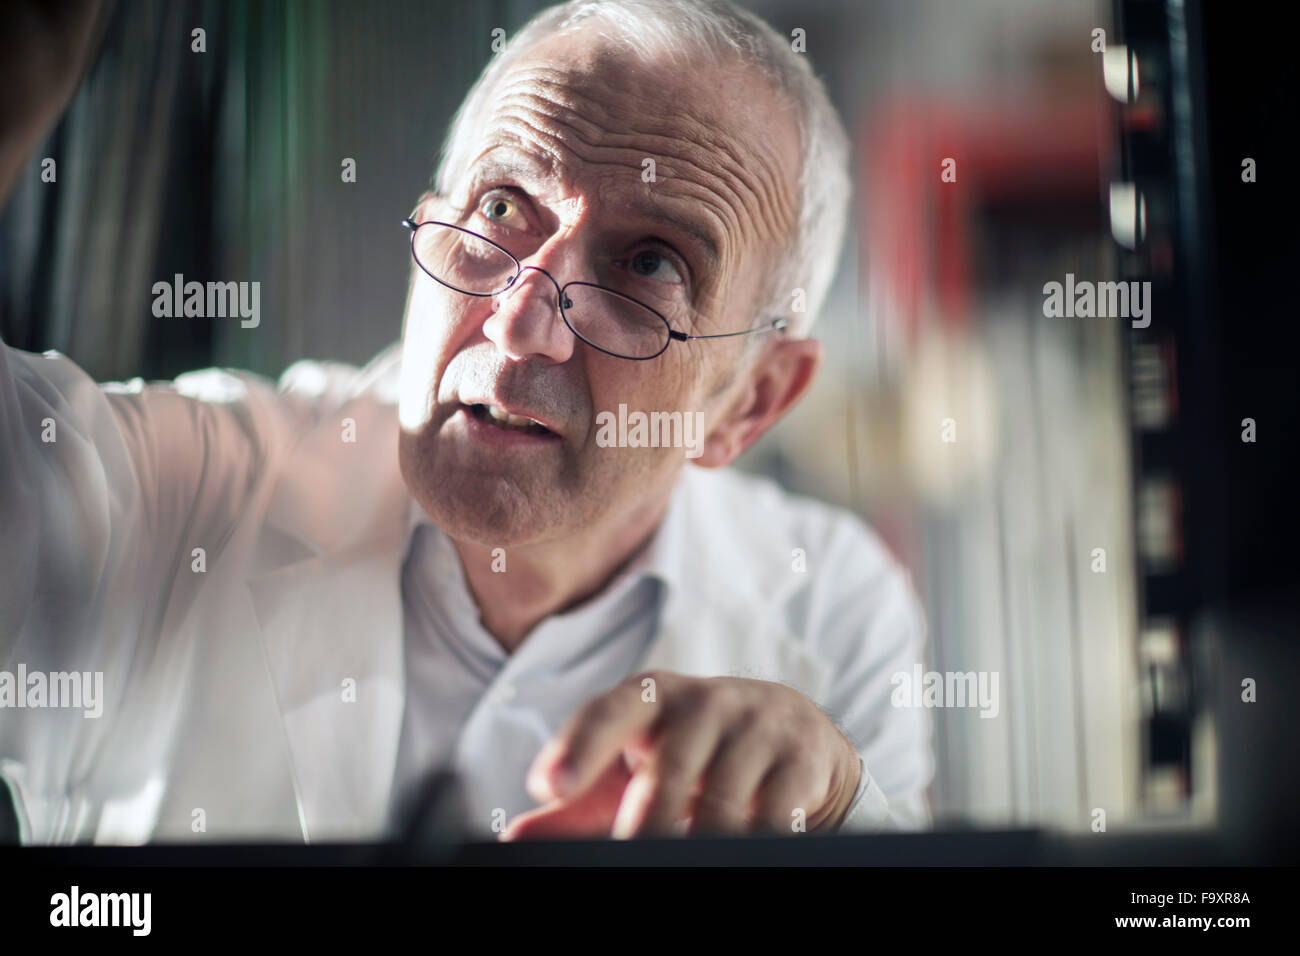 Portrait of man controlling device - Stock Image